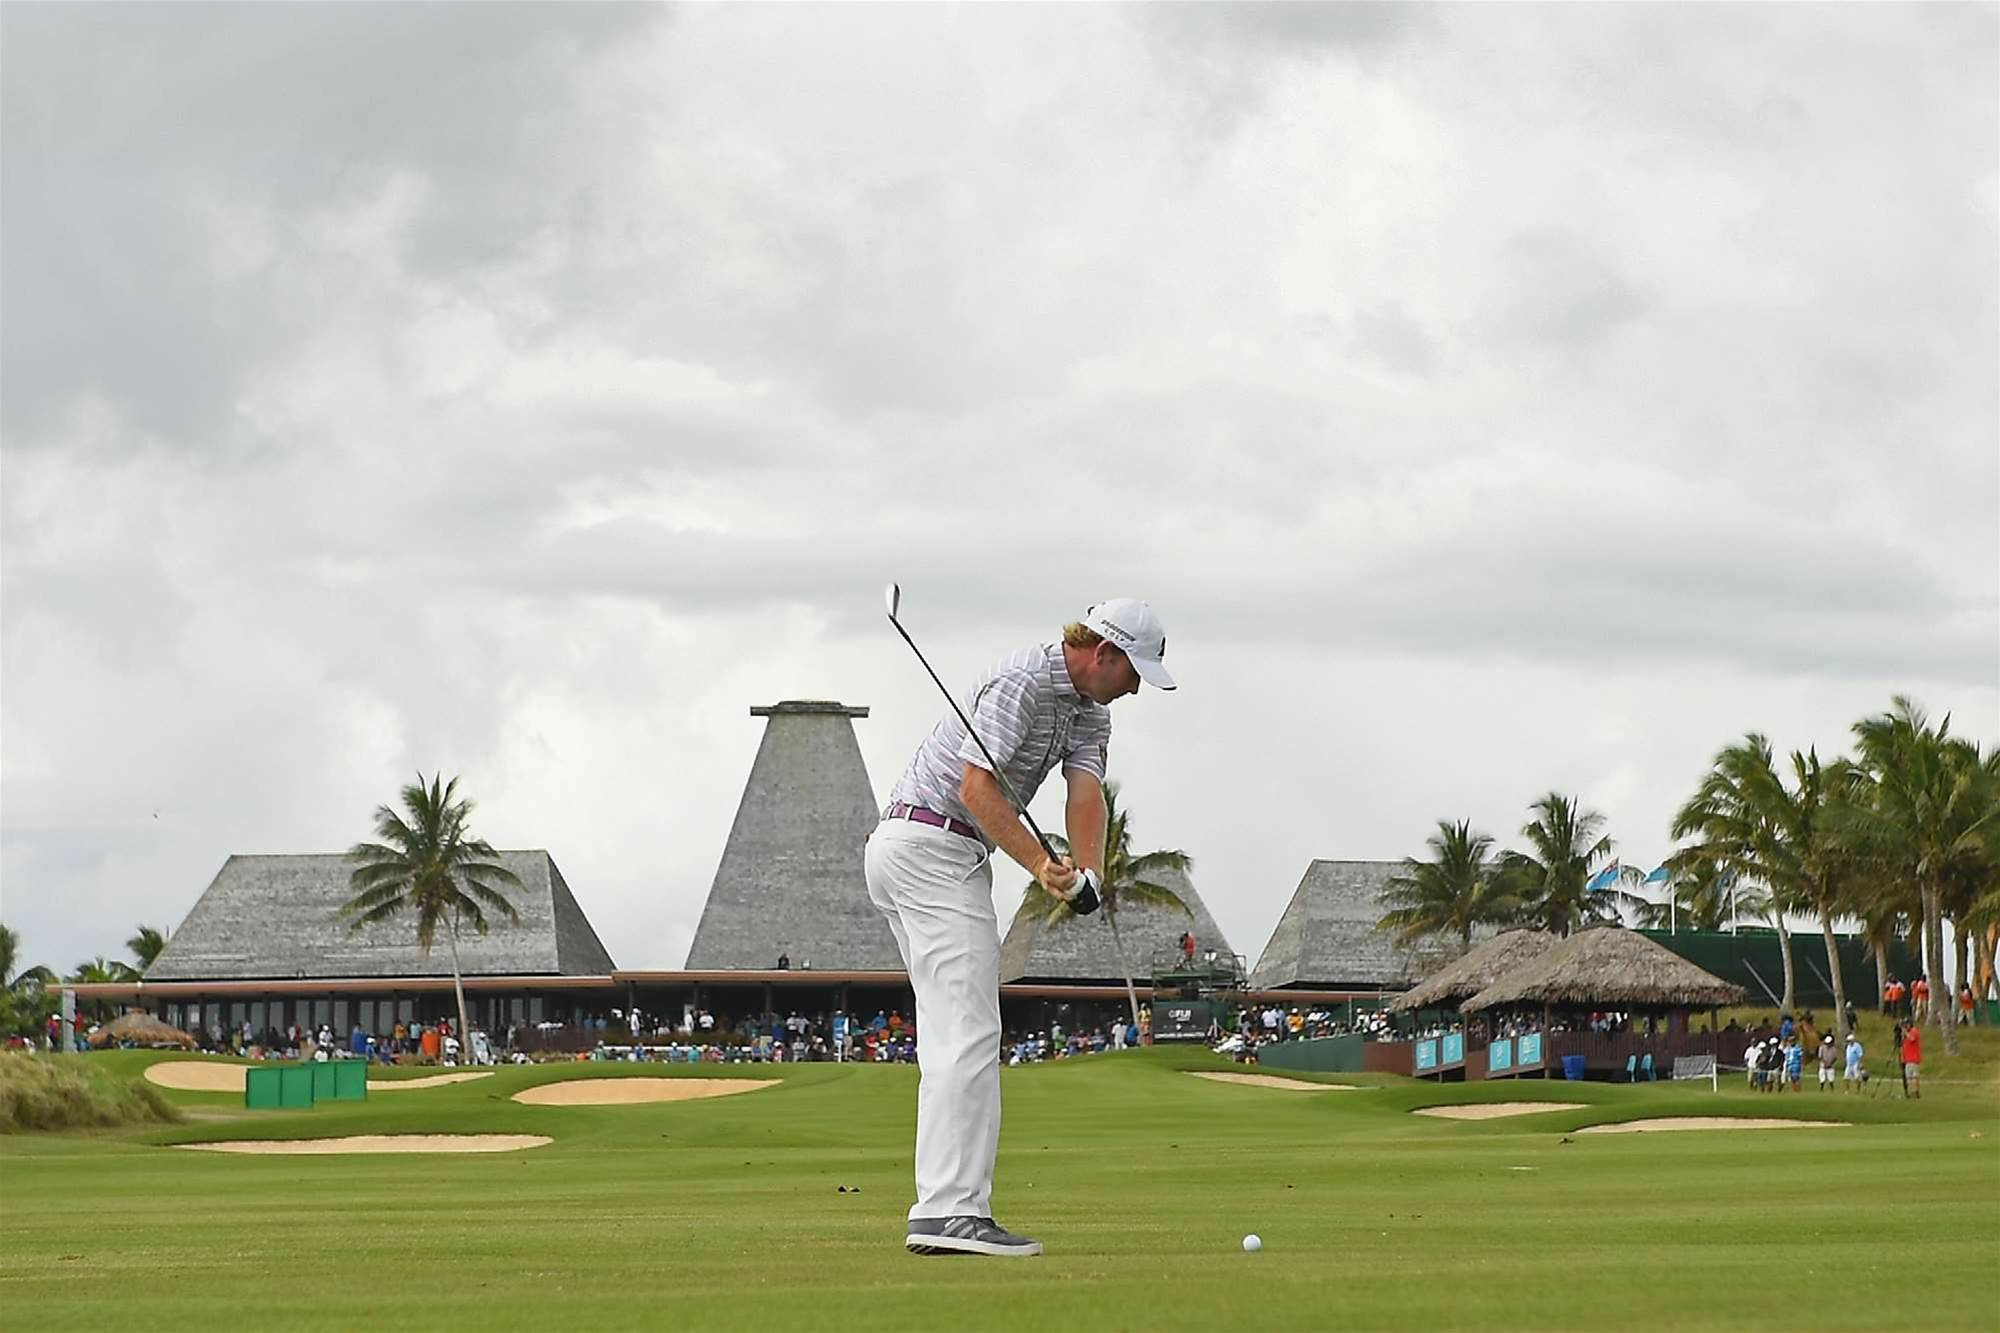 international unstoppable snedeker romps home by nine golf calling upon his experience patience and skills in strong winds brandt snedeker delivered an emphatic victory photo quinn rooney getty images